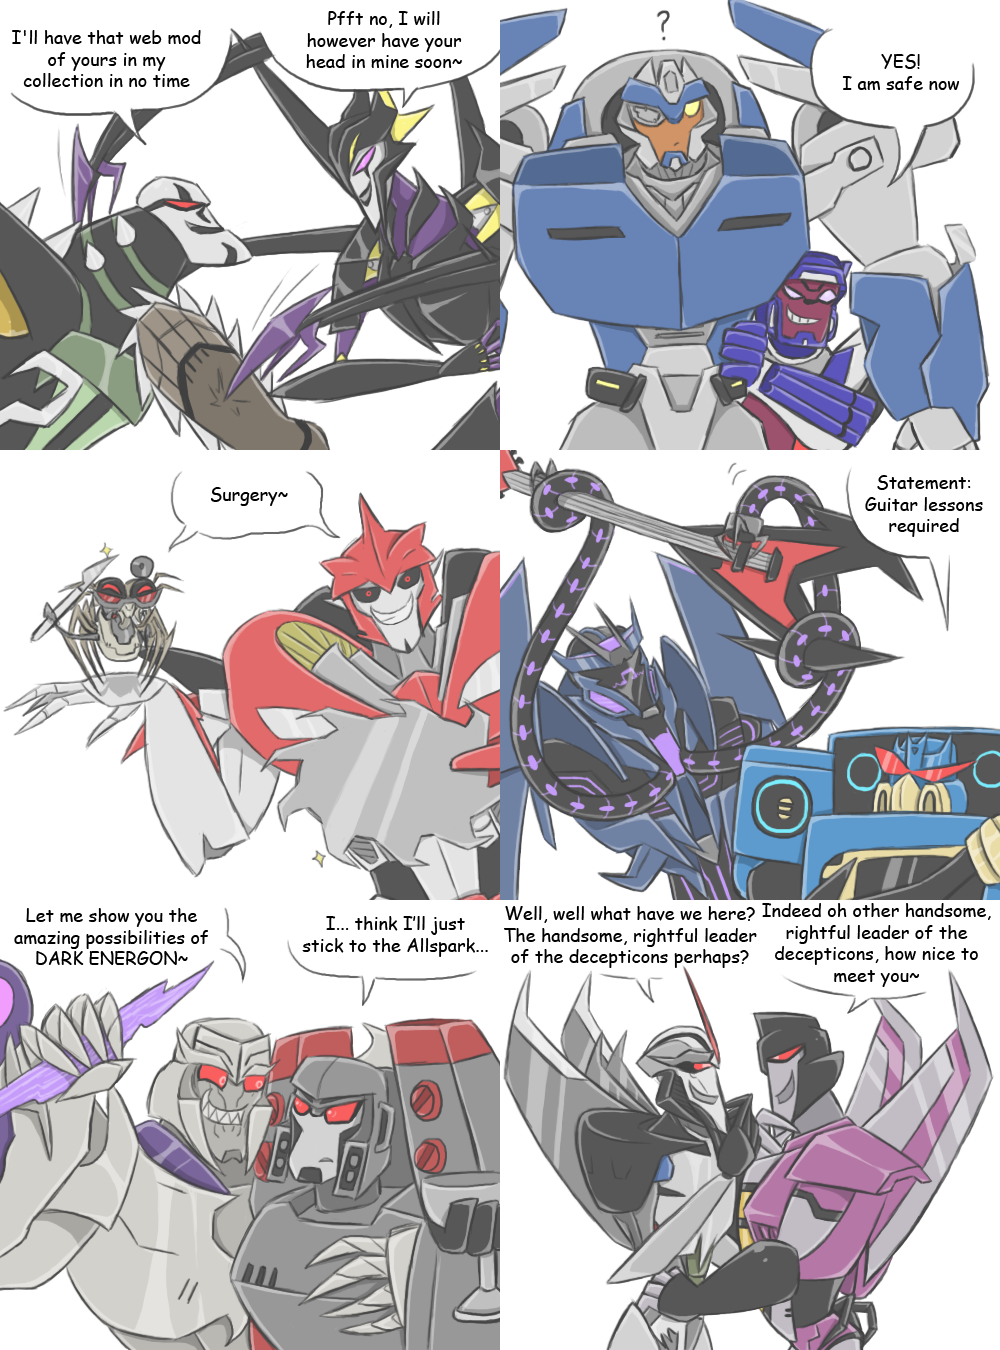 Tf countdown to tfp season 2 crossovers 13 18 by rosey raven on